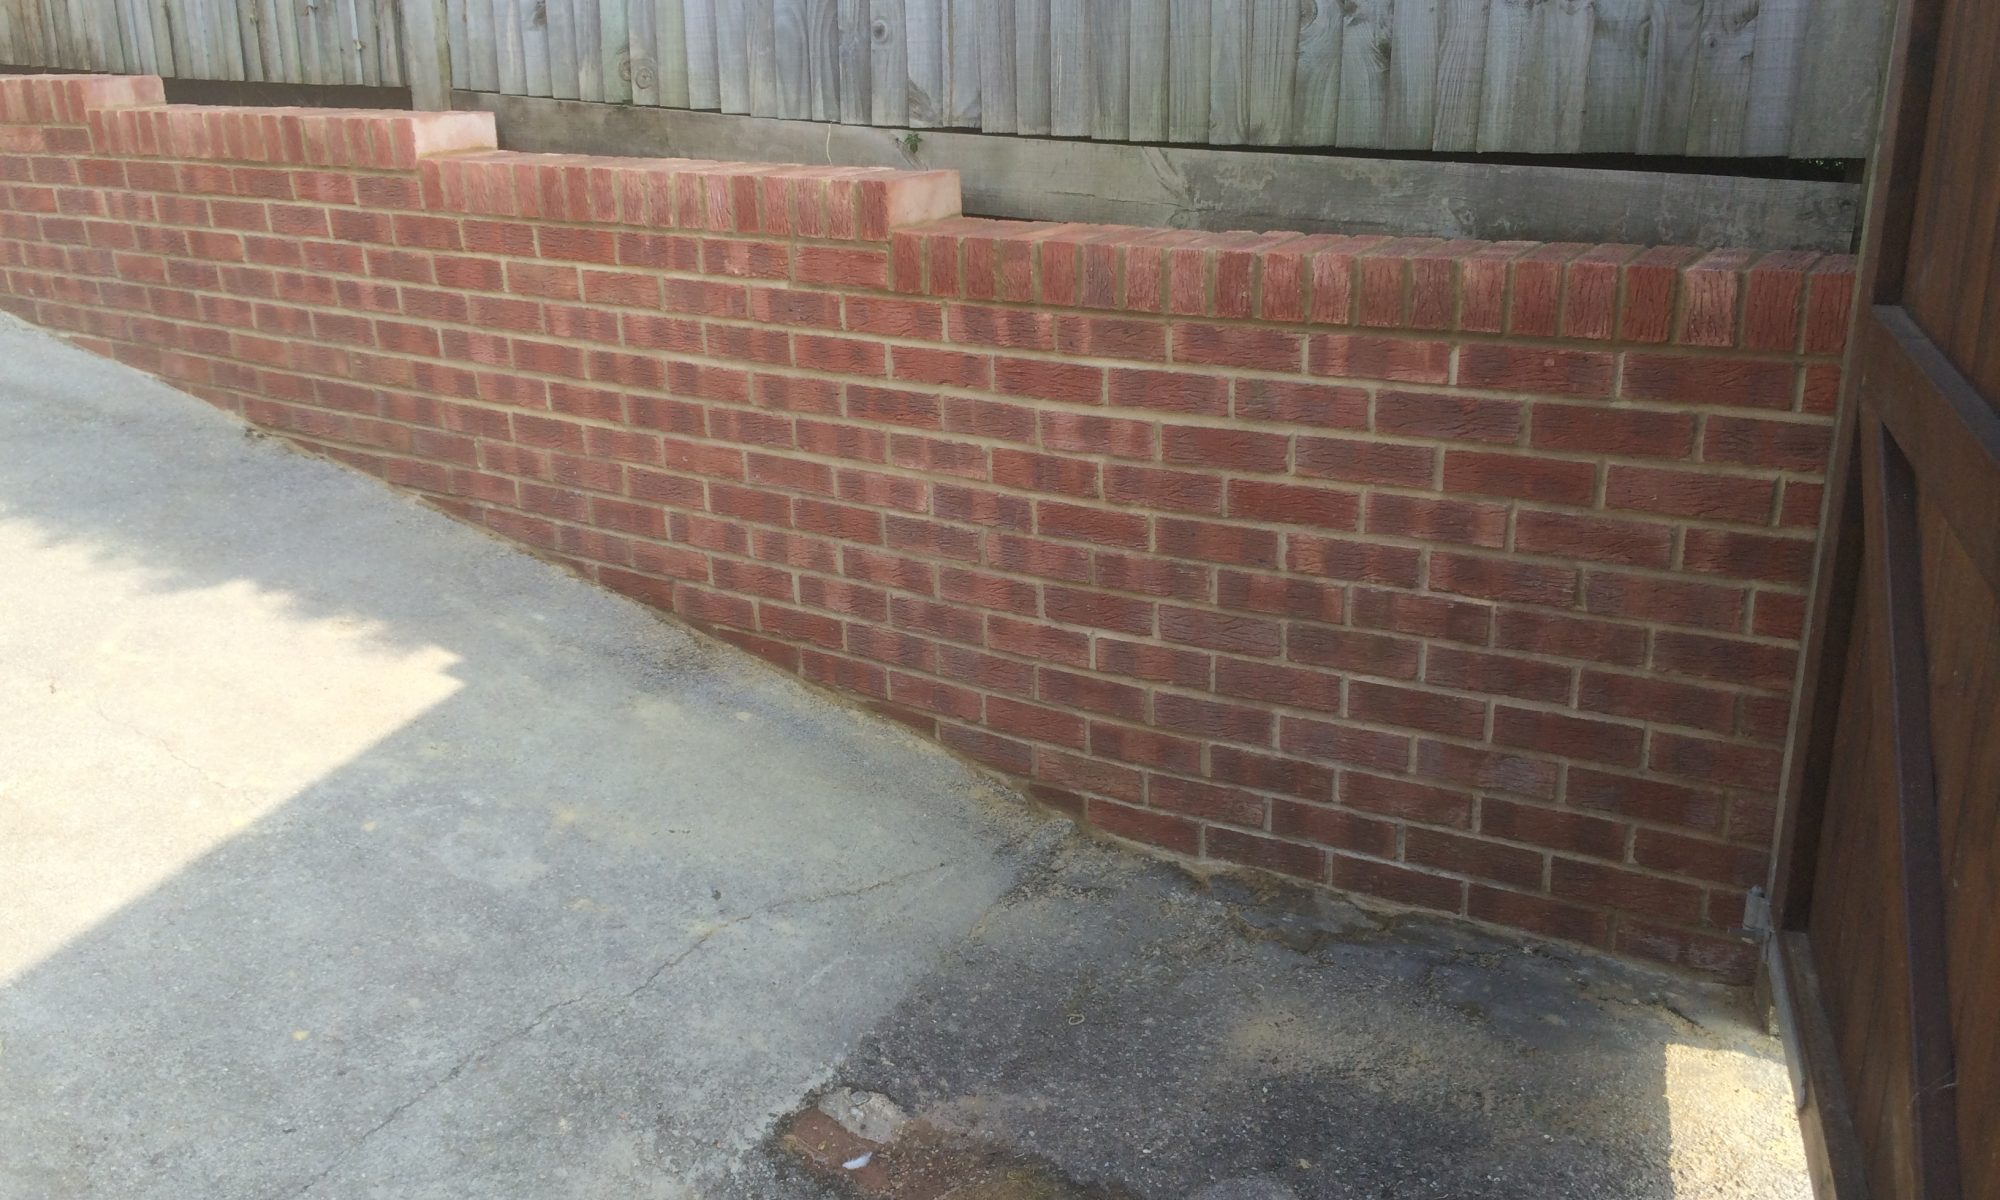 Landscaping - Retaining Wall - Brick